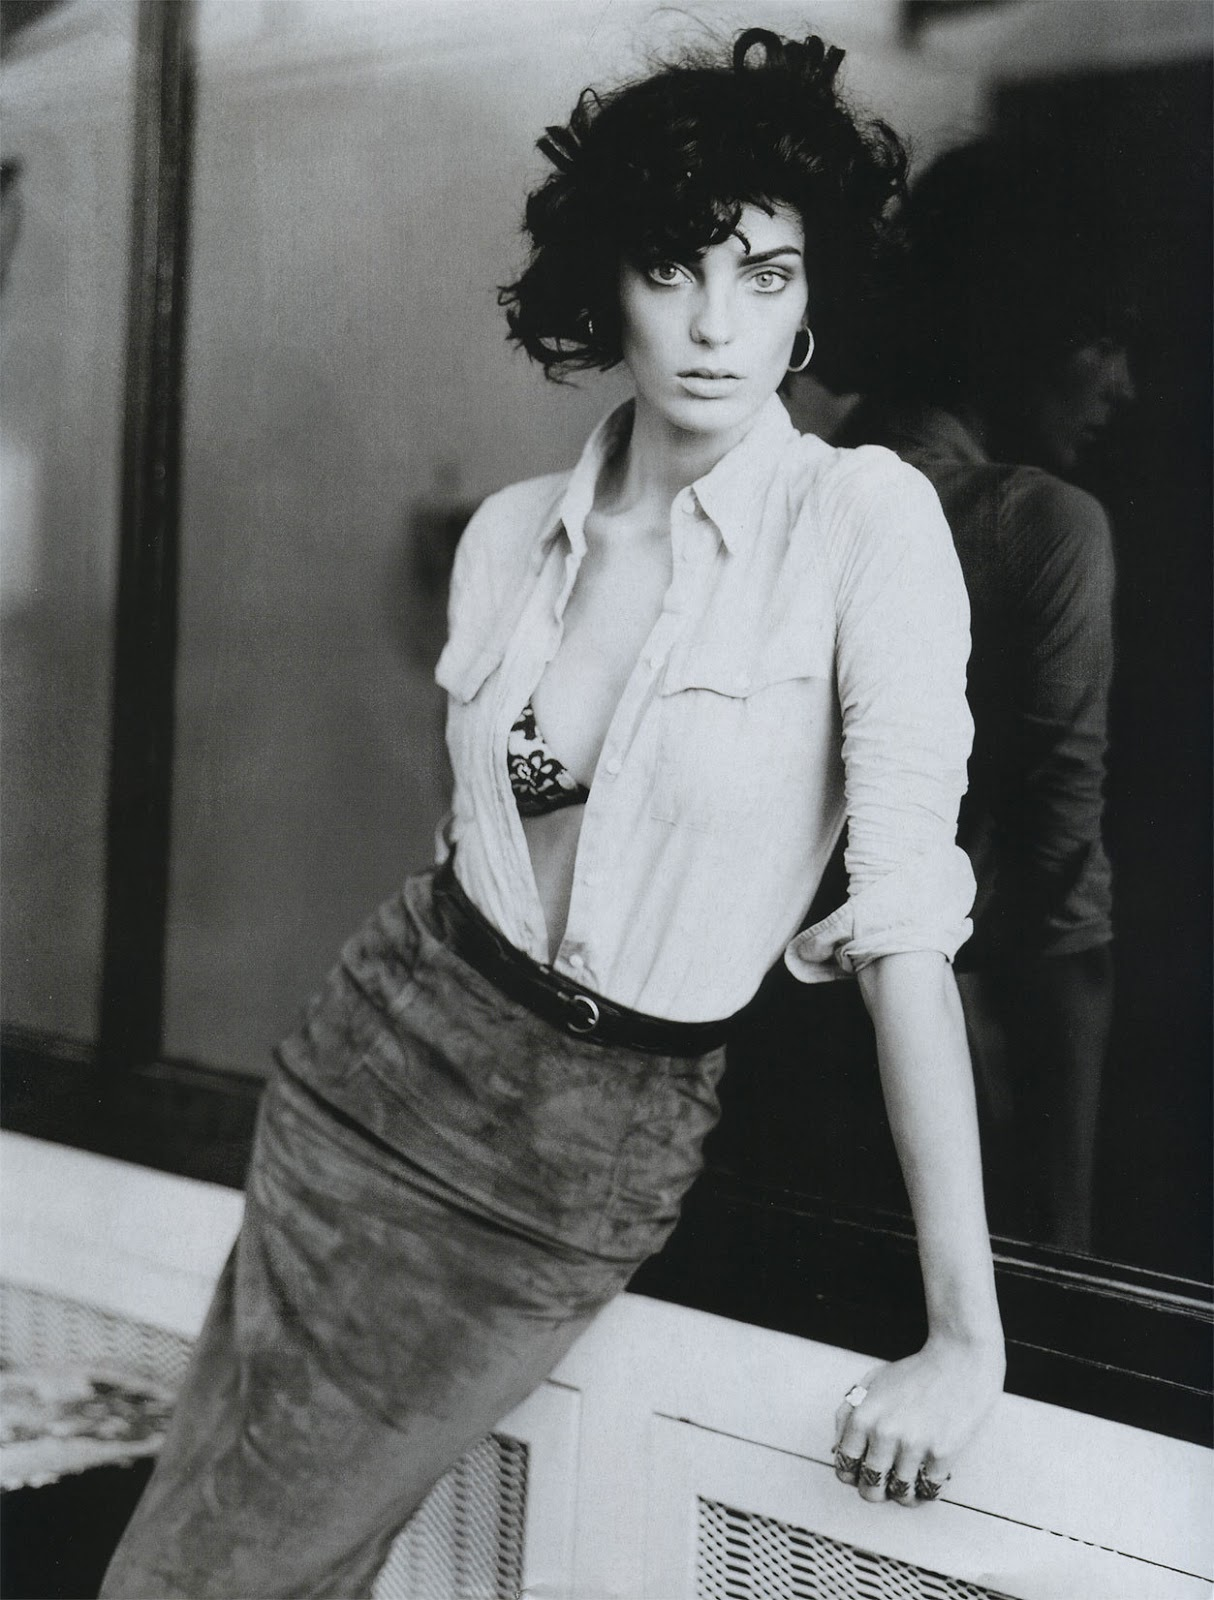 via fashioned by love | Daria Werbowy in Vogue Paris March 2004 (photography: Paolo Roversi, styling: Carine Roitfeld)